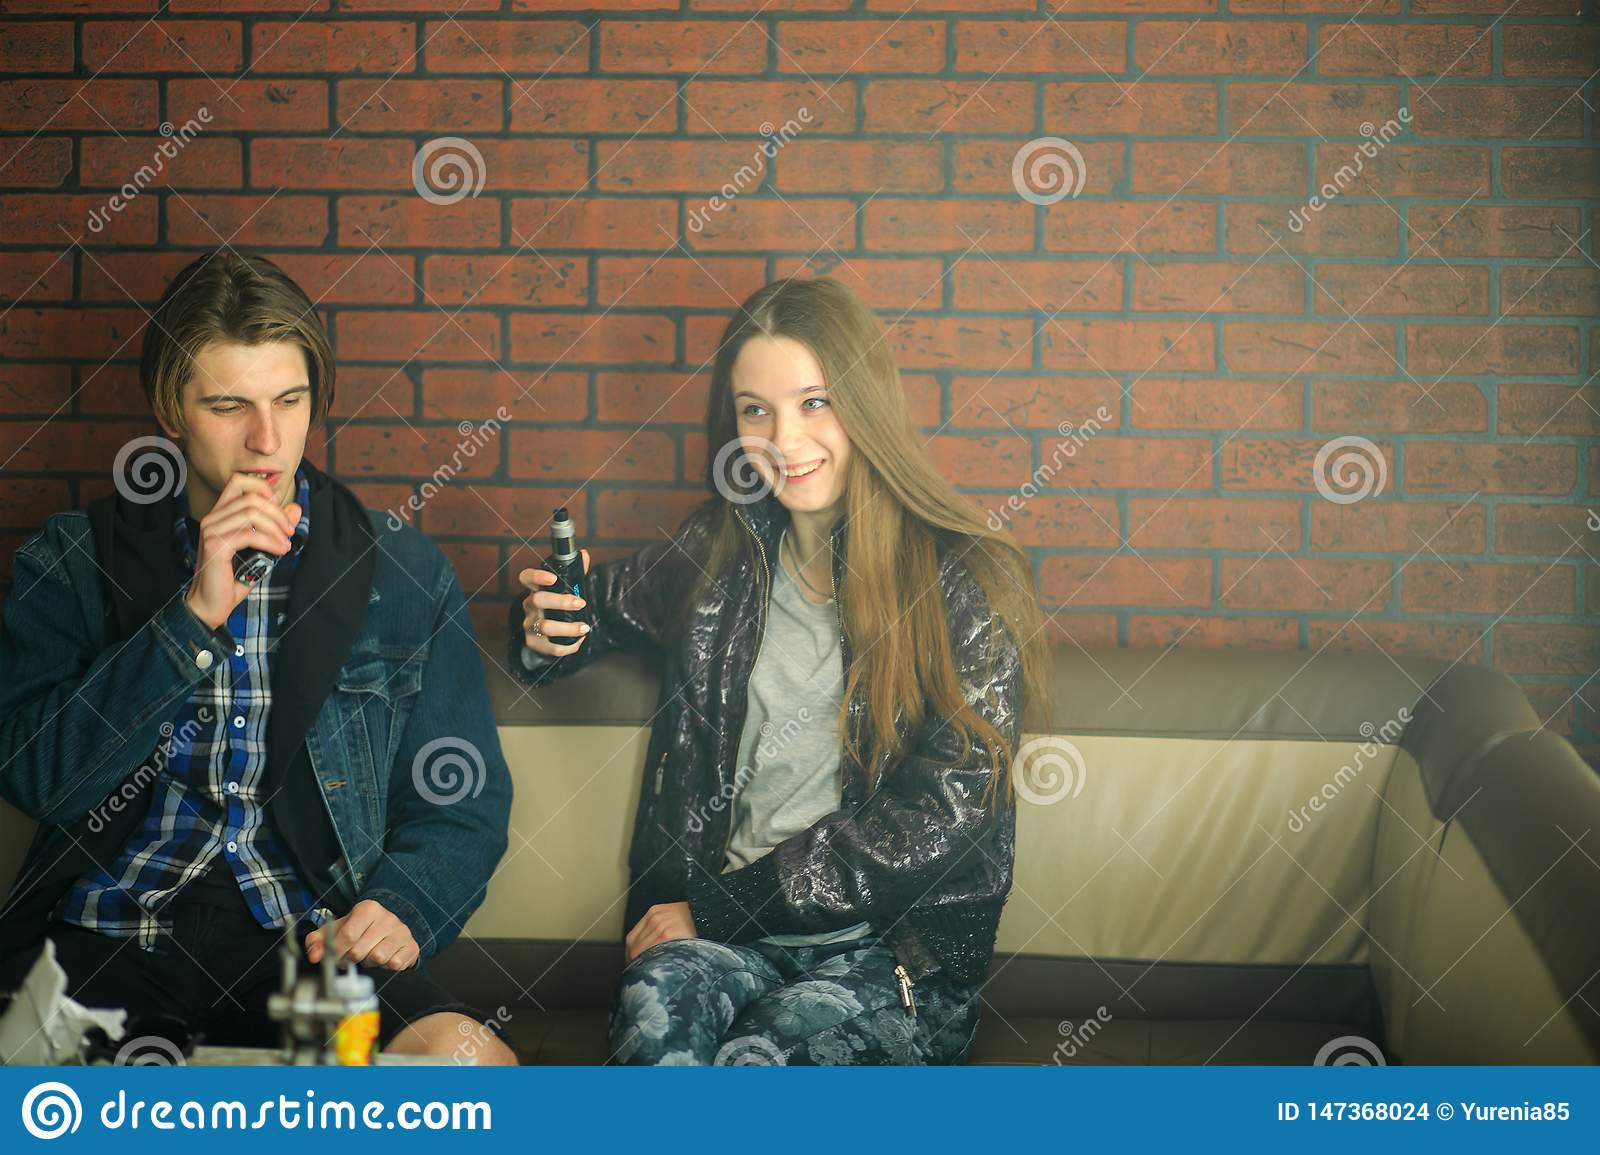 Vape teenagers. Young cute girl and young handsome guy smoke an electronic cigarettes in the vape bar. Bad habit